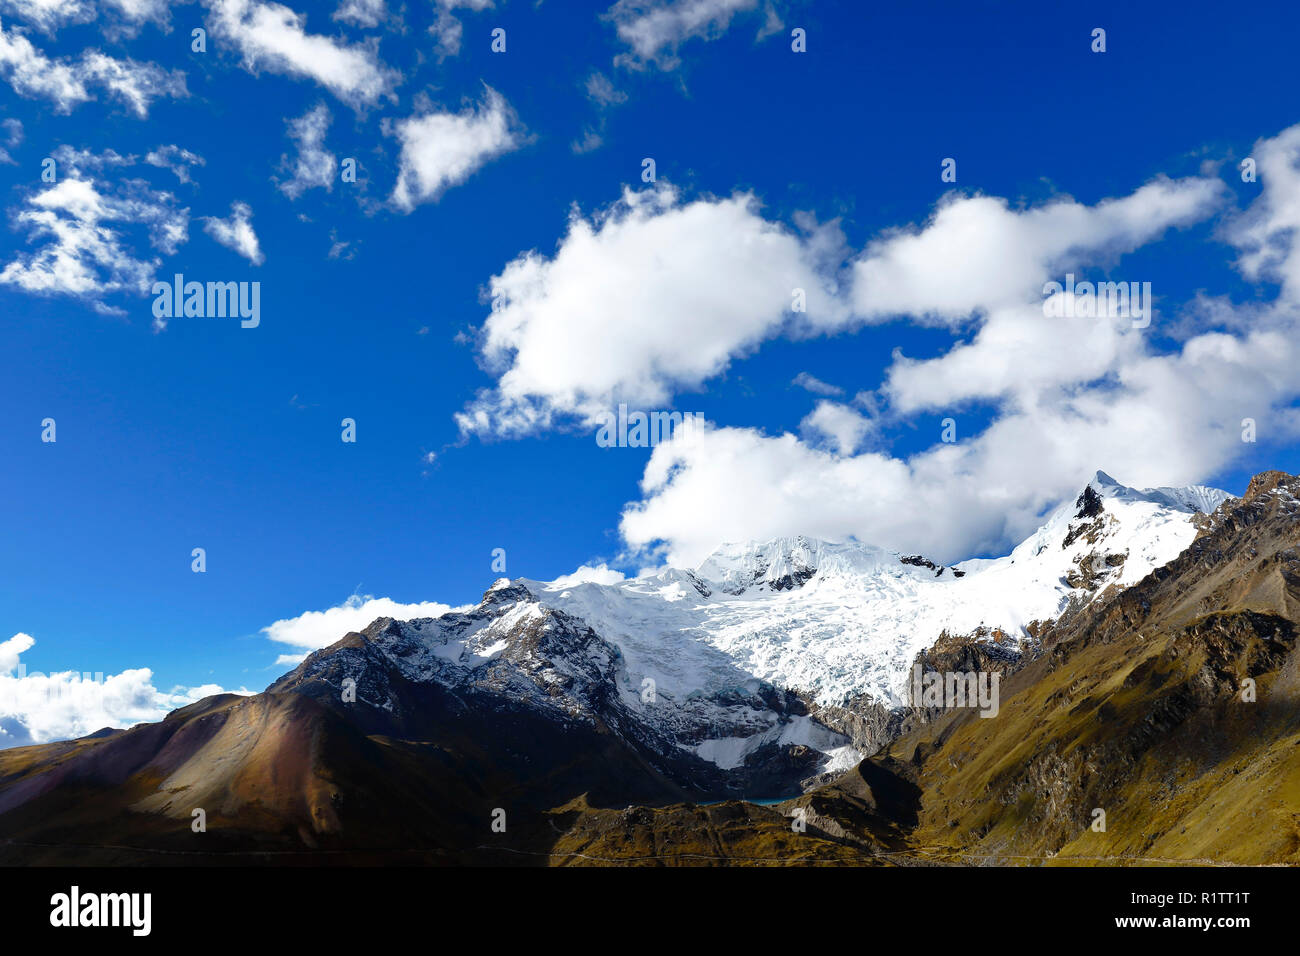 Sunset view of the snowy Huaytapallana in the central mountain range of the Peruvian Andes - Stock Image